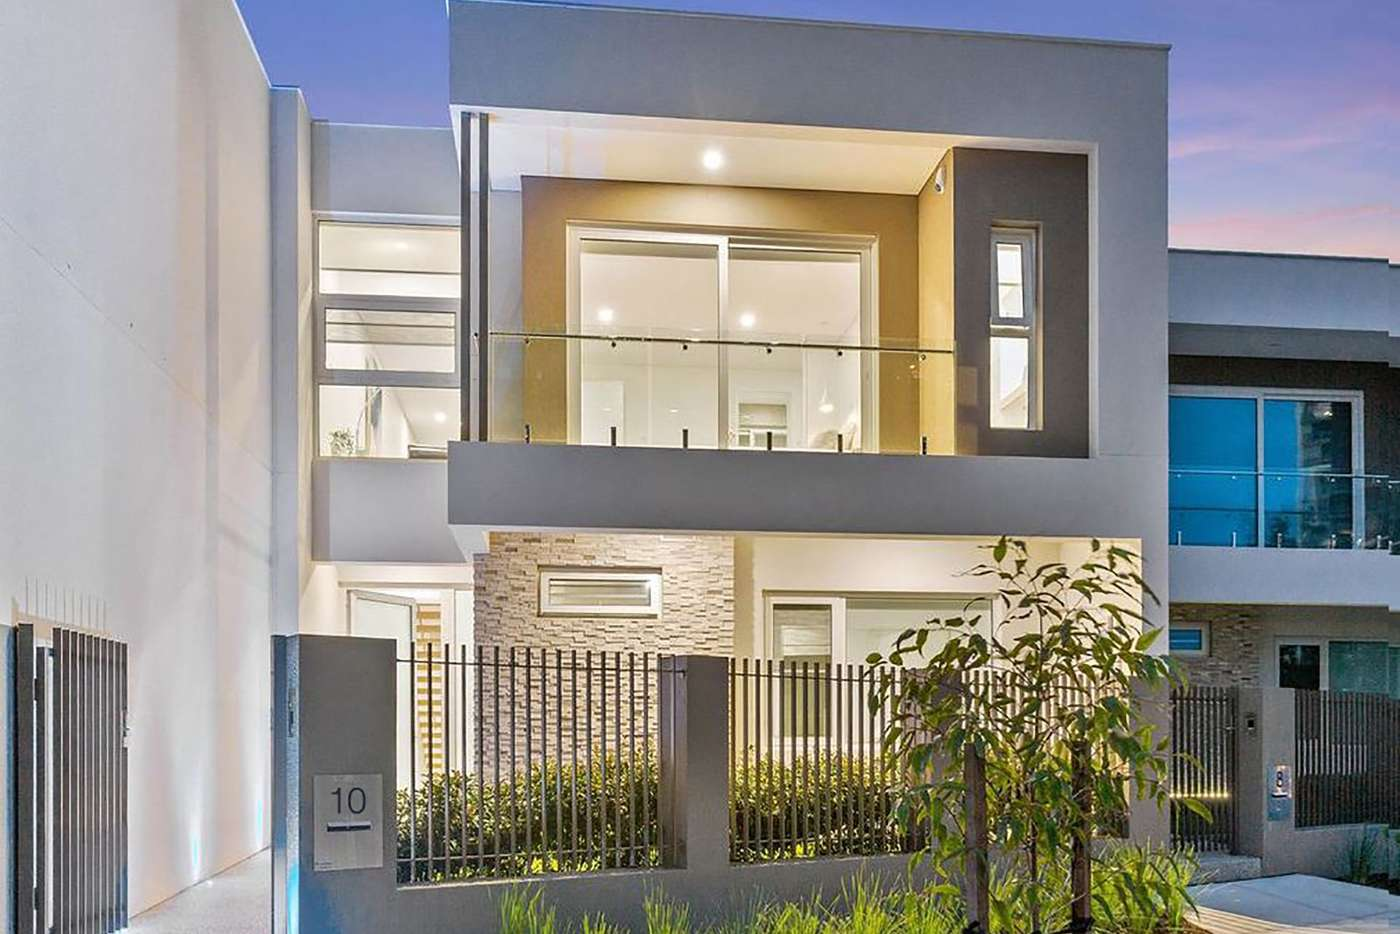 Main view of Homely house listing, 10 The Promenade, Burswood WA 6100